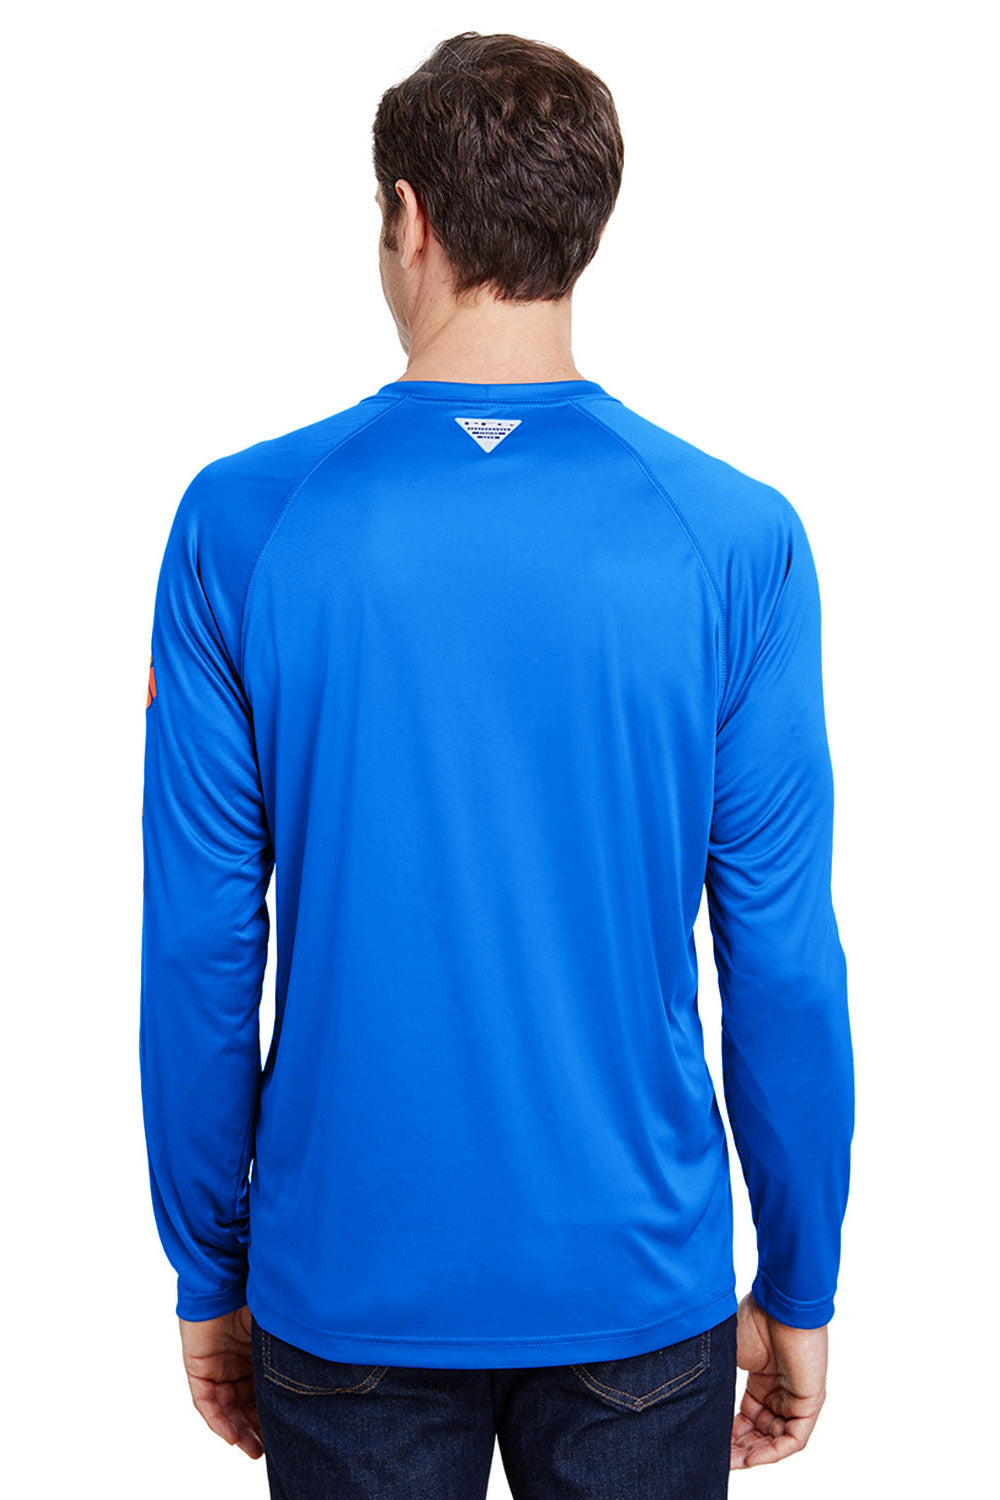 Columbia 1388261 Mens Terminal Tackle Long Sleeve Crewneck T-Shirt Royal Blue Back